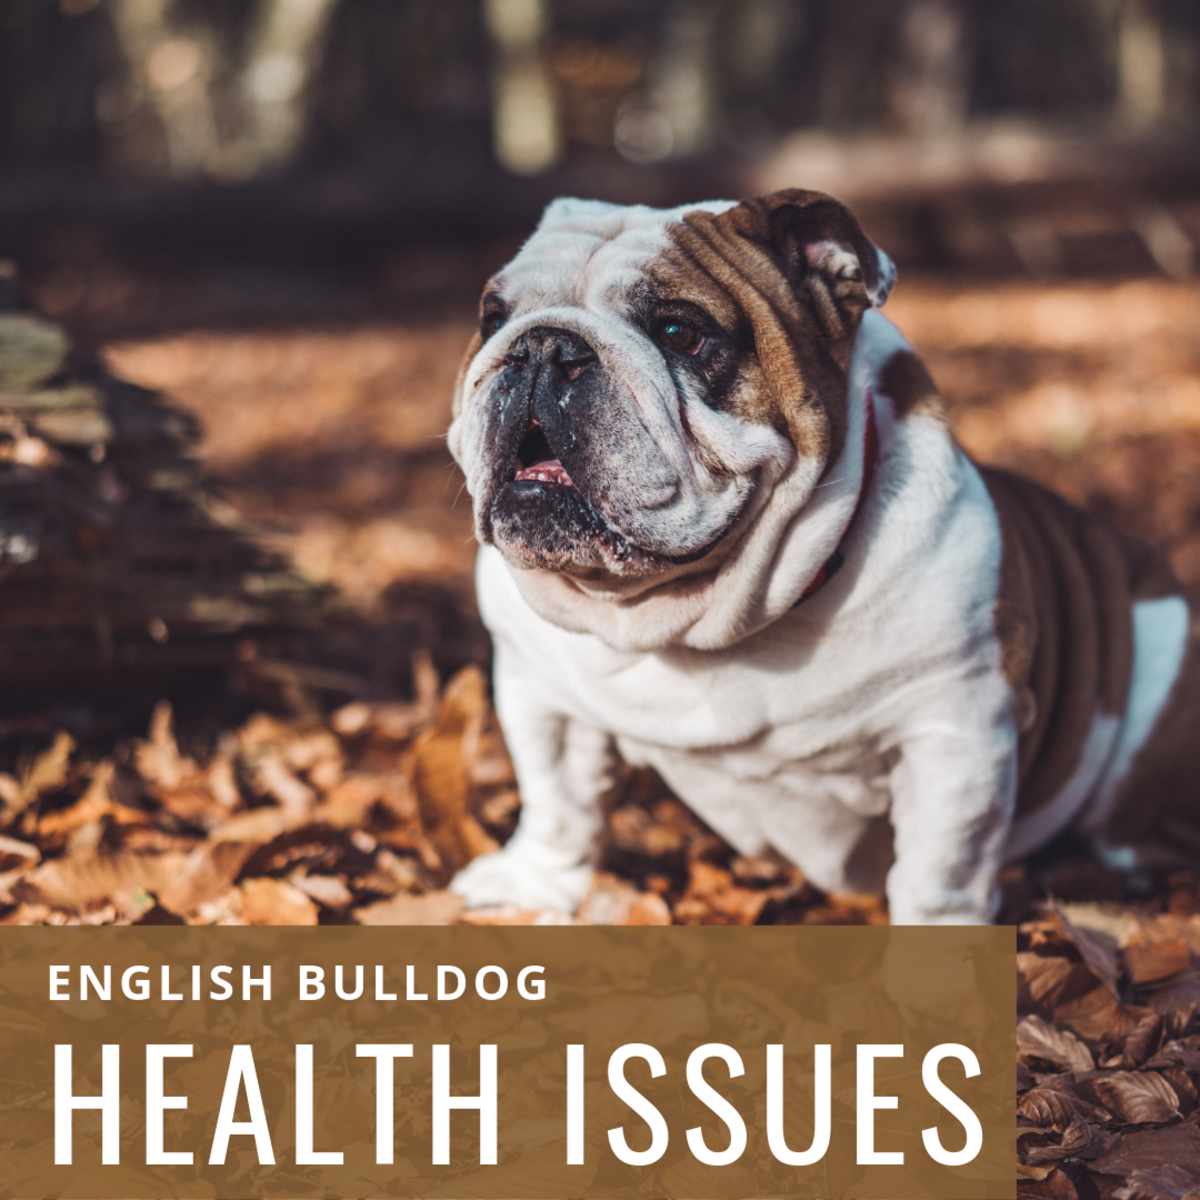 English Bulldog Health Issues